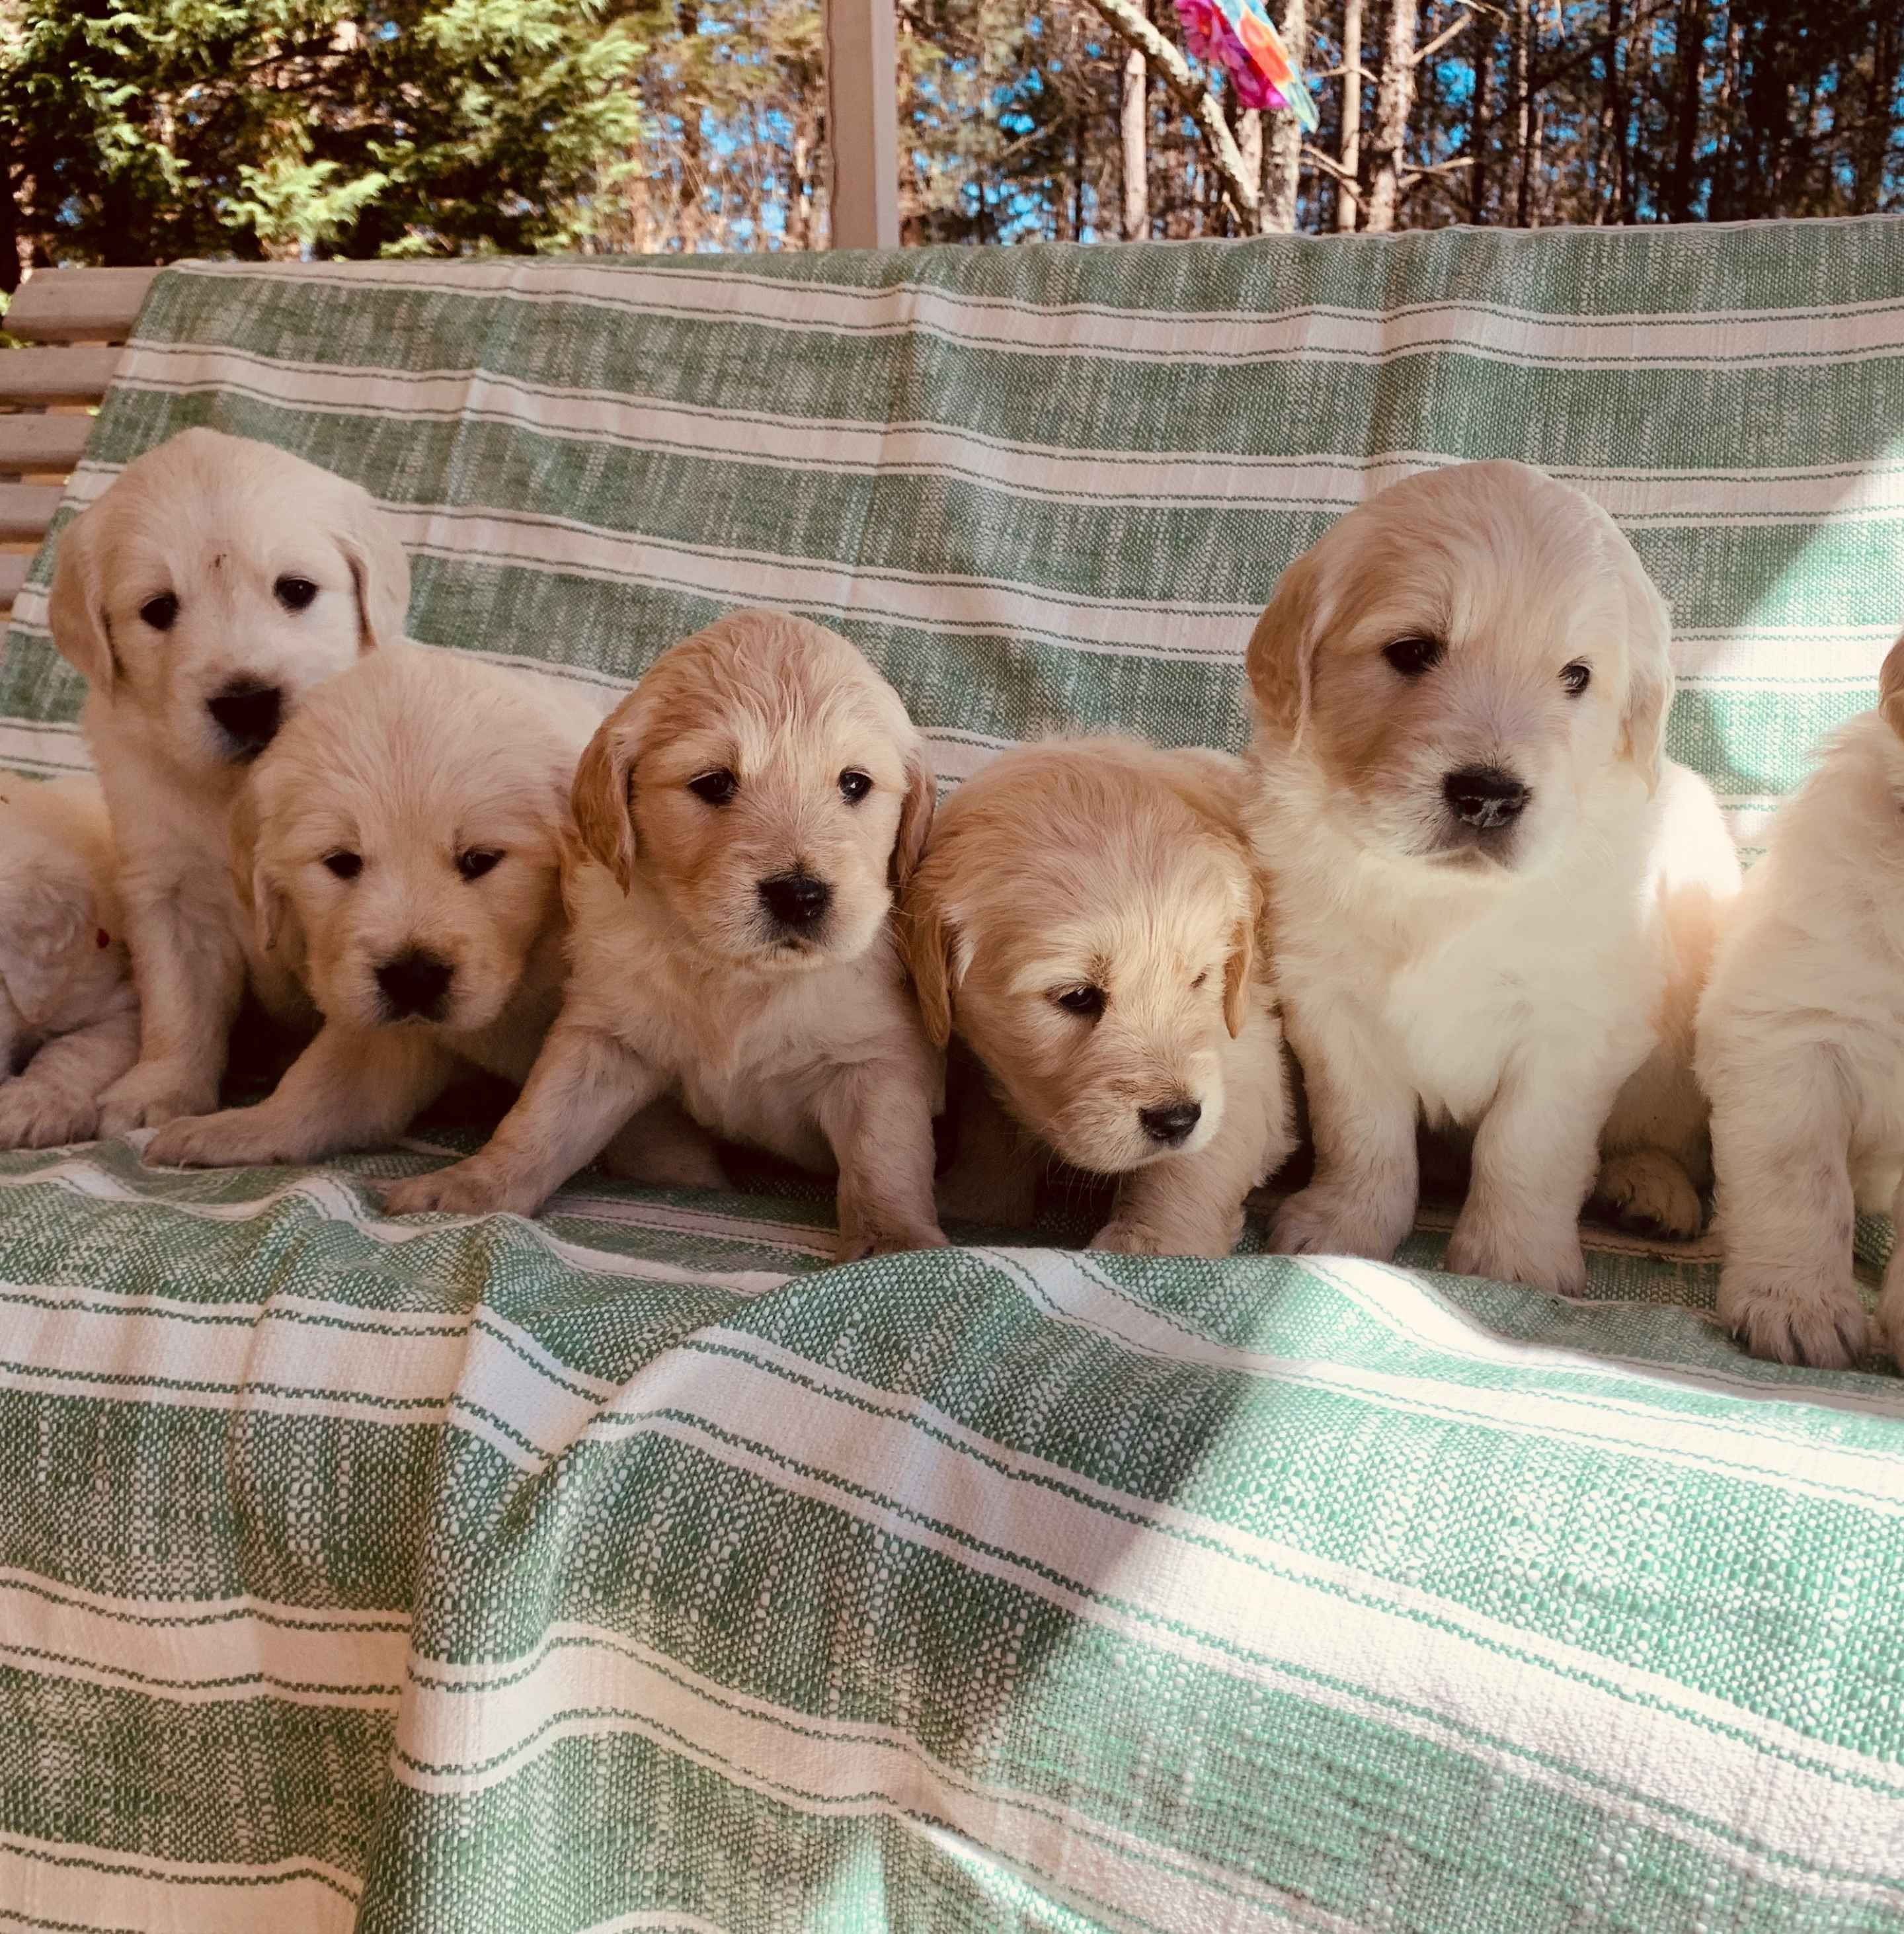 Colby Kristin Anderson Has Golden Retriever Puppies For Sale In Denver Nc On Akc Puppyfinder Retriever Puppy Golden Retriever Puppies